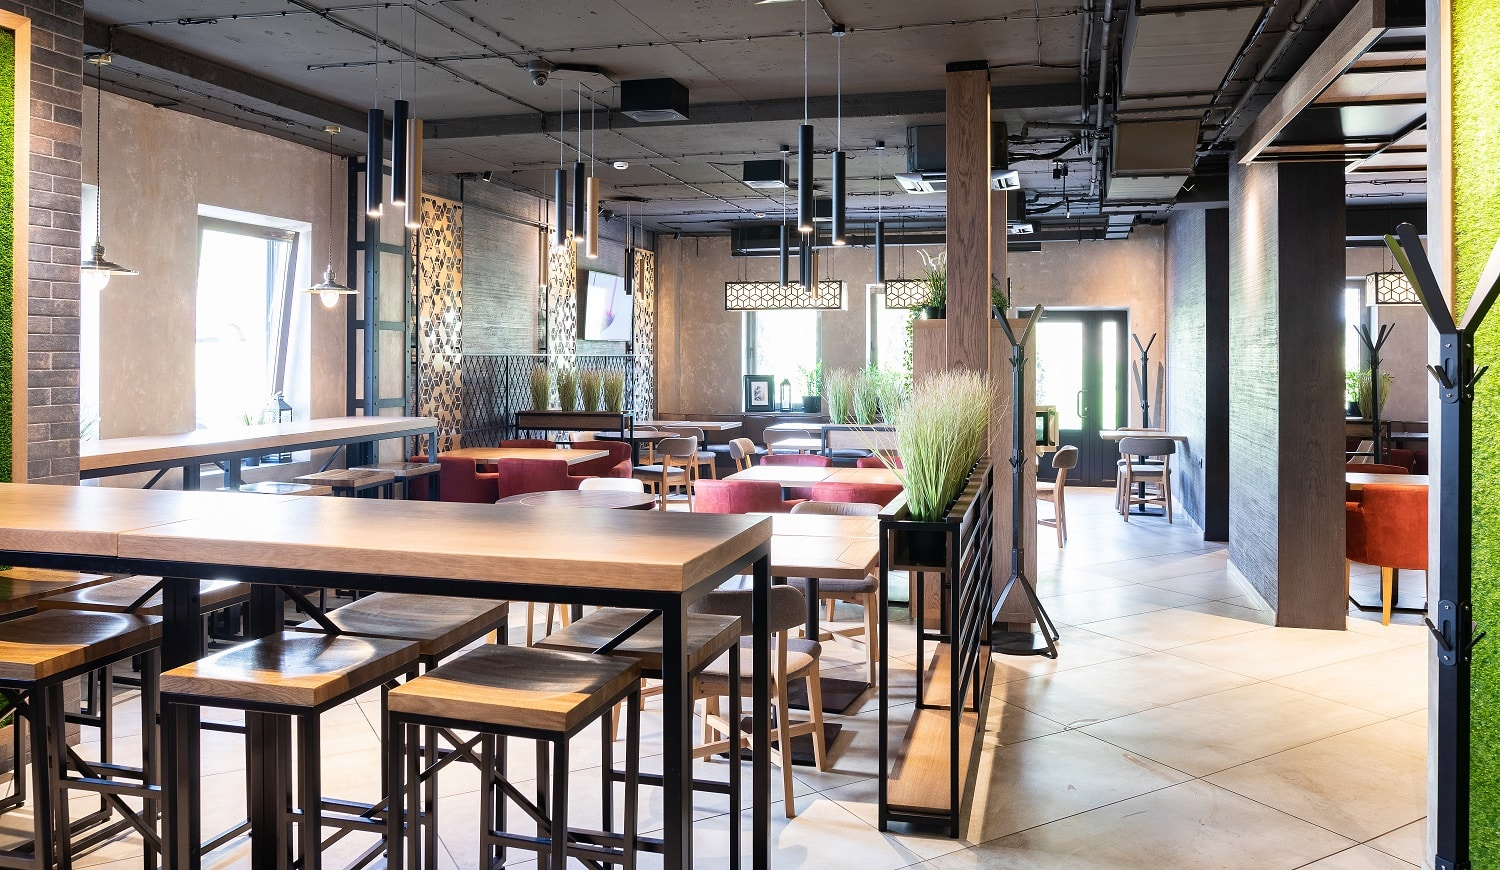 Main hall in the new modern restaurant in freshh green style with exquisite modern furniture